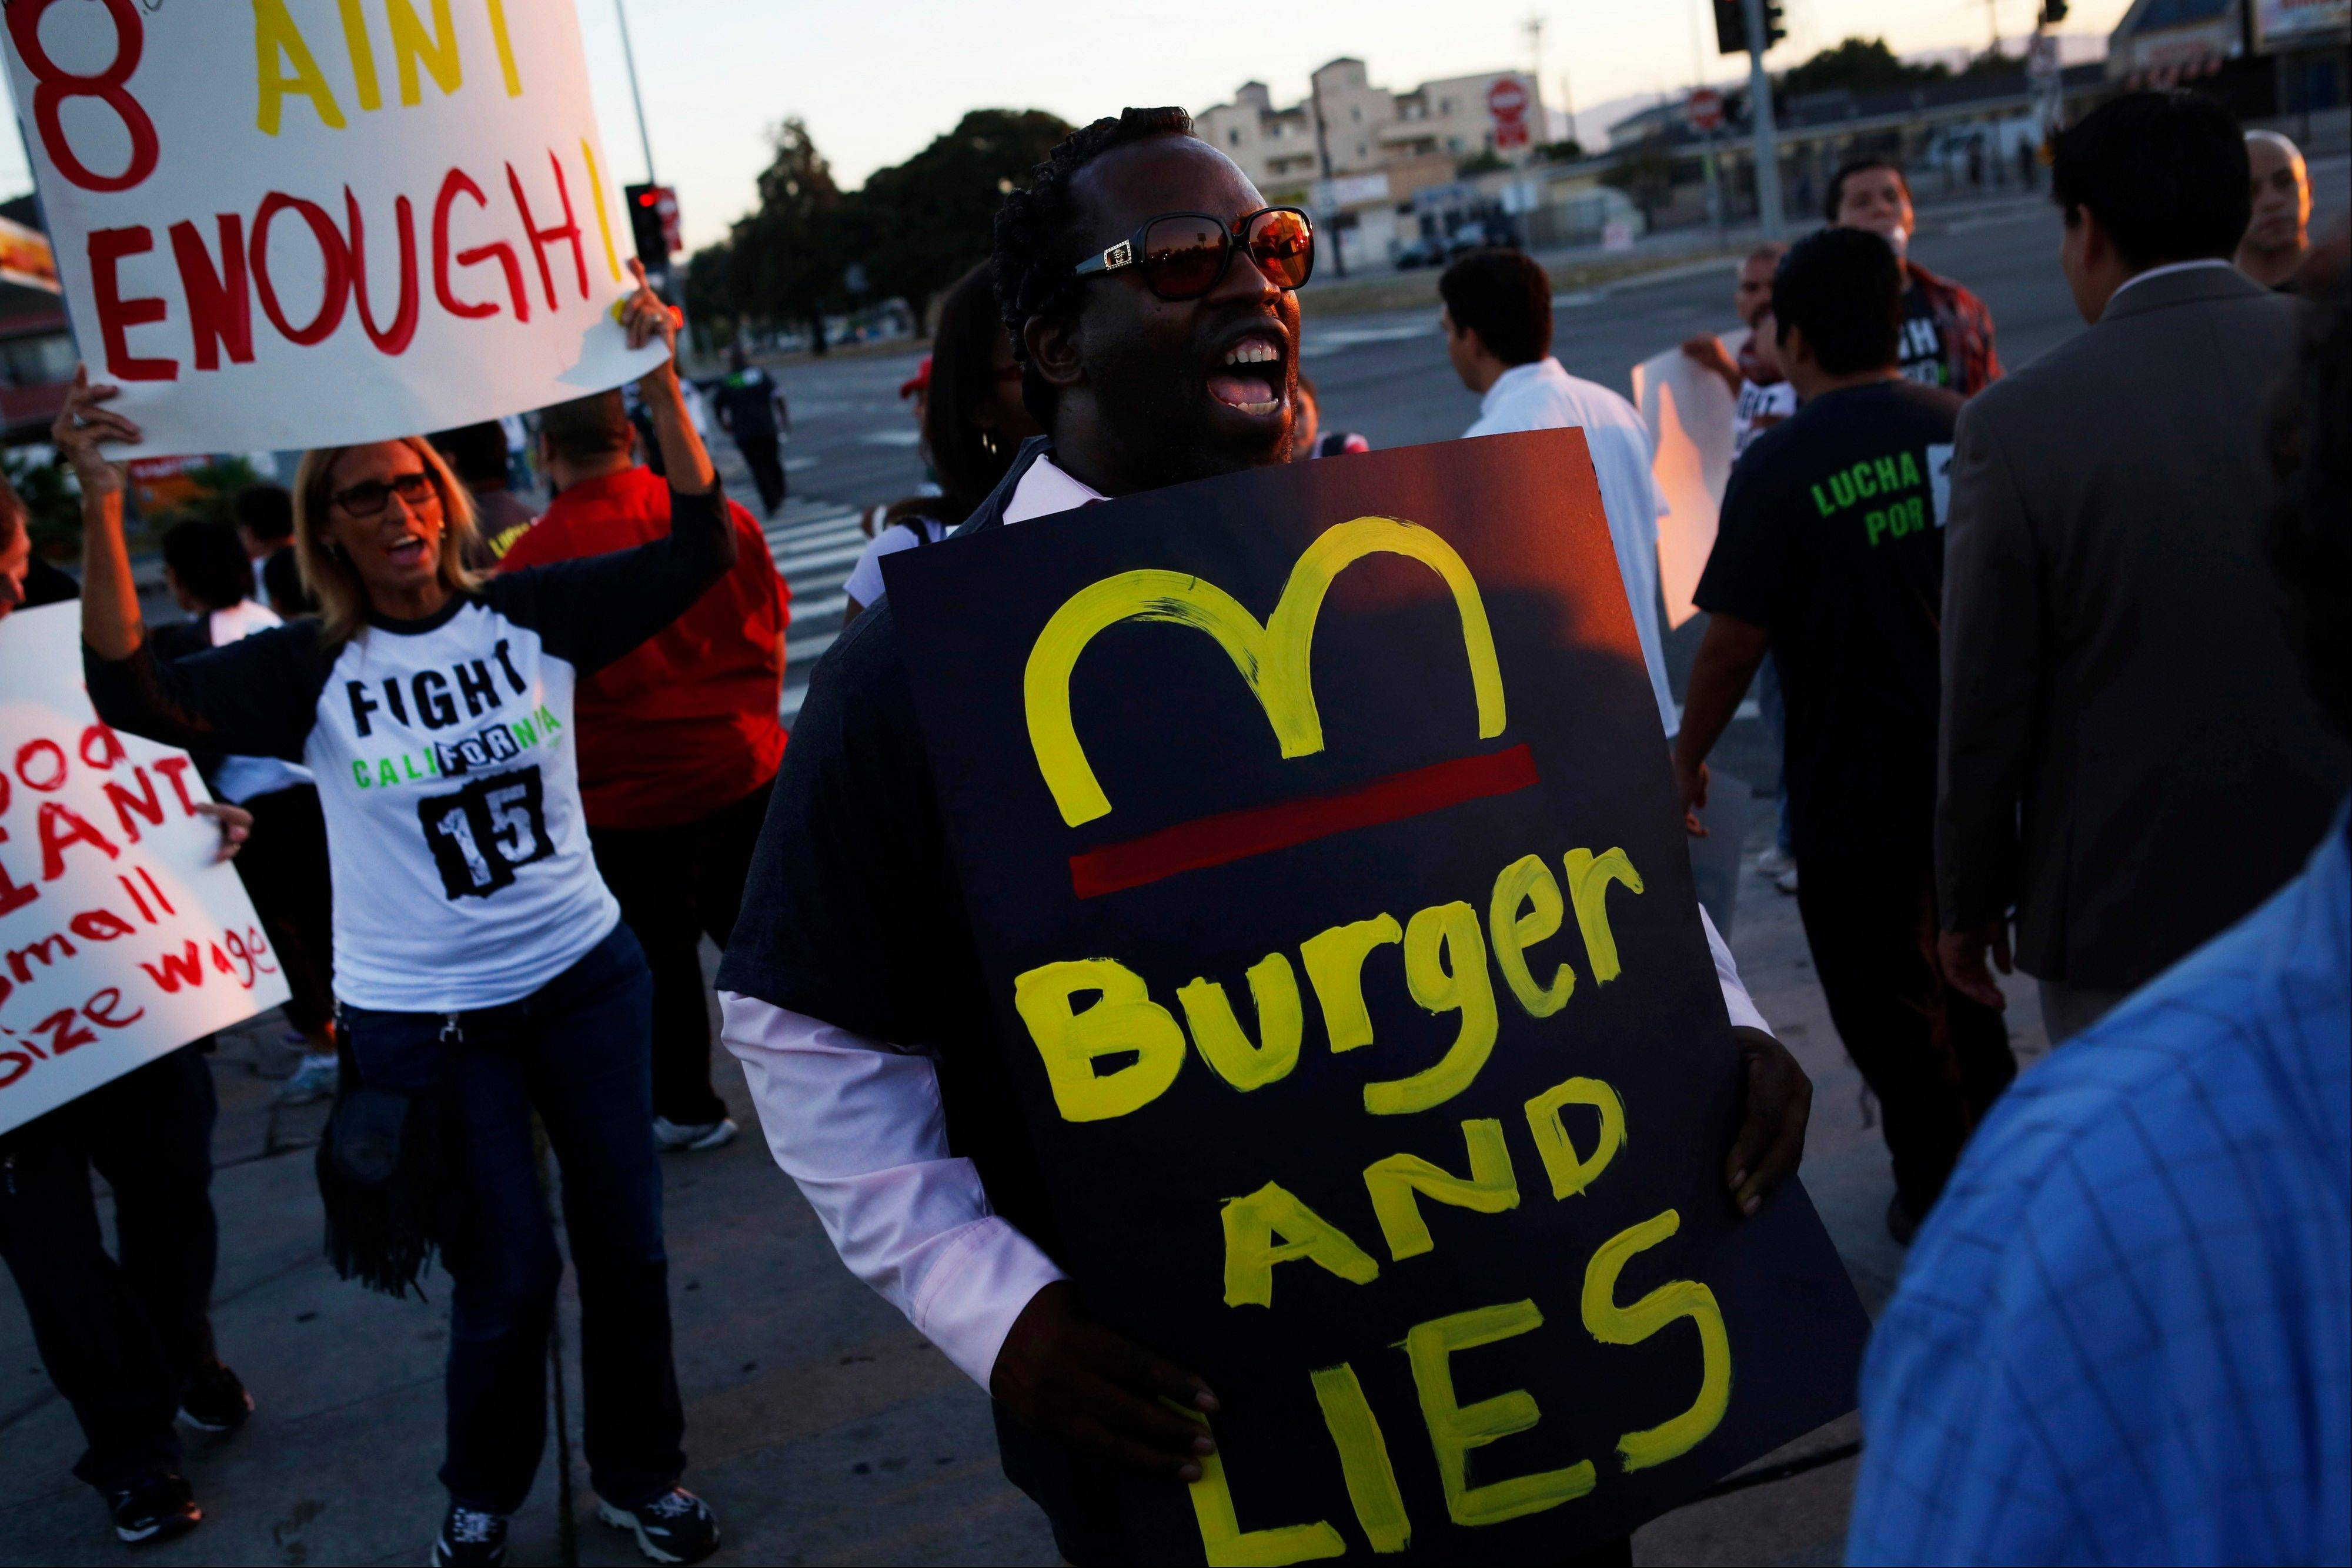 Fast-food workers and supporters protest outside a Burger King in Los Angeles, one of the demonstrations across the country Thursday meant to rachet up pressure on the industry to raise wages.